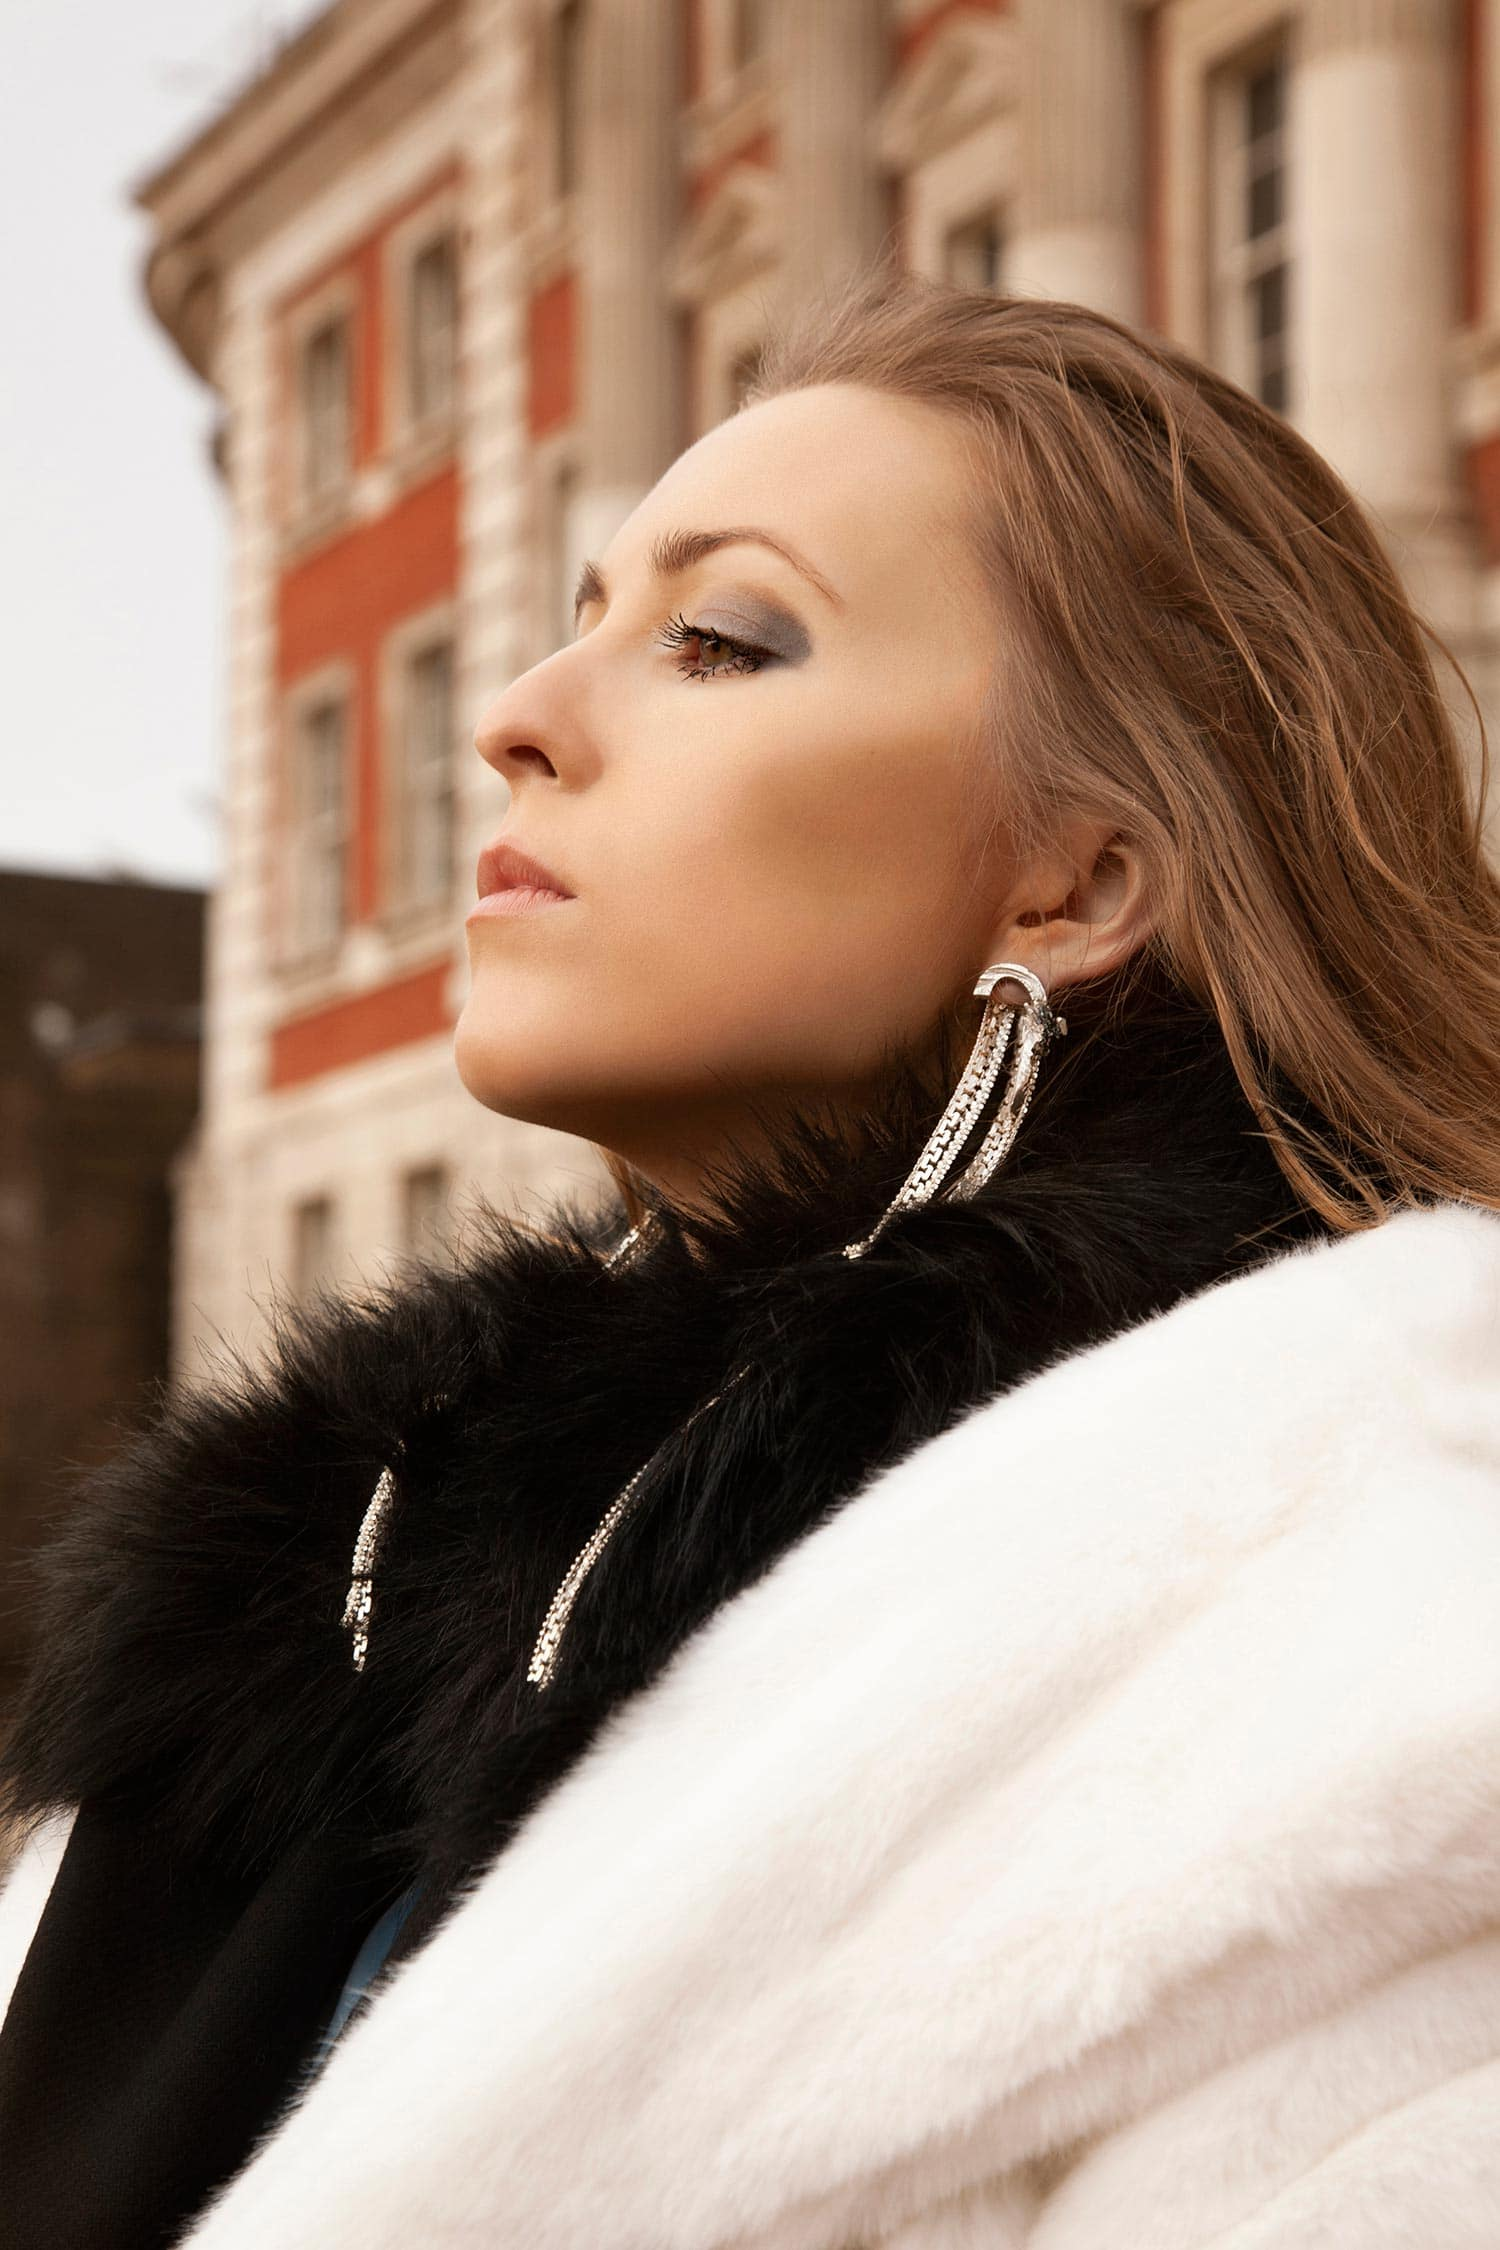 Zydrune high-end jewellery lookbook. Model wearing white and black fur coat and statement earrings.